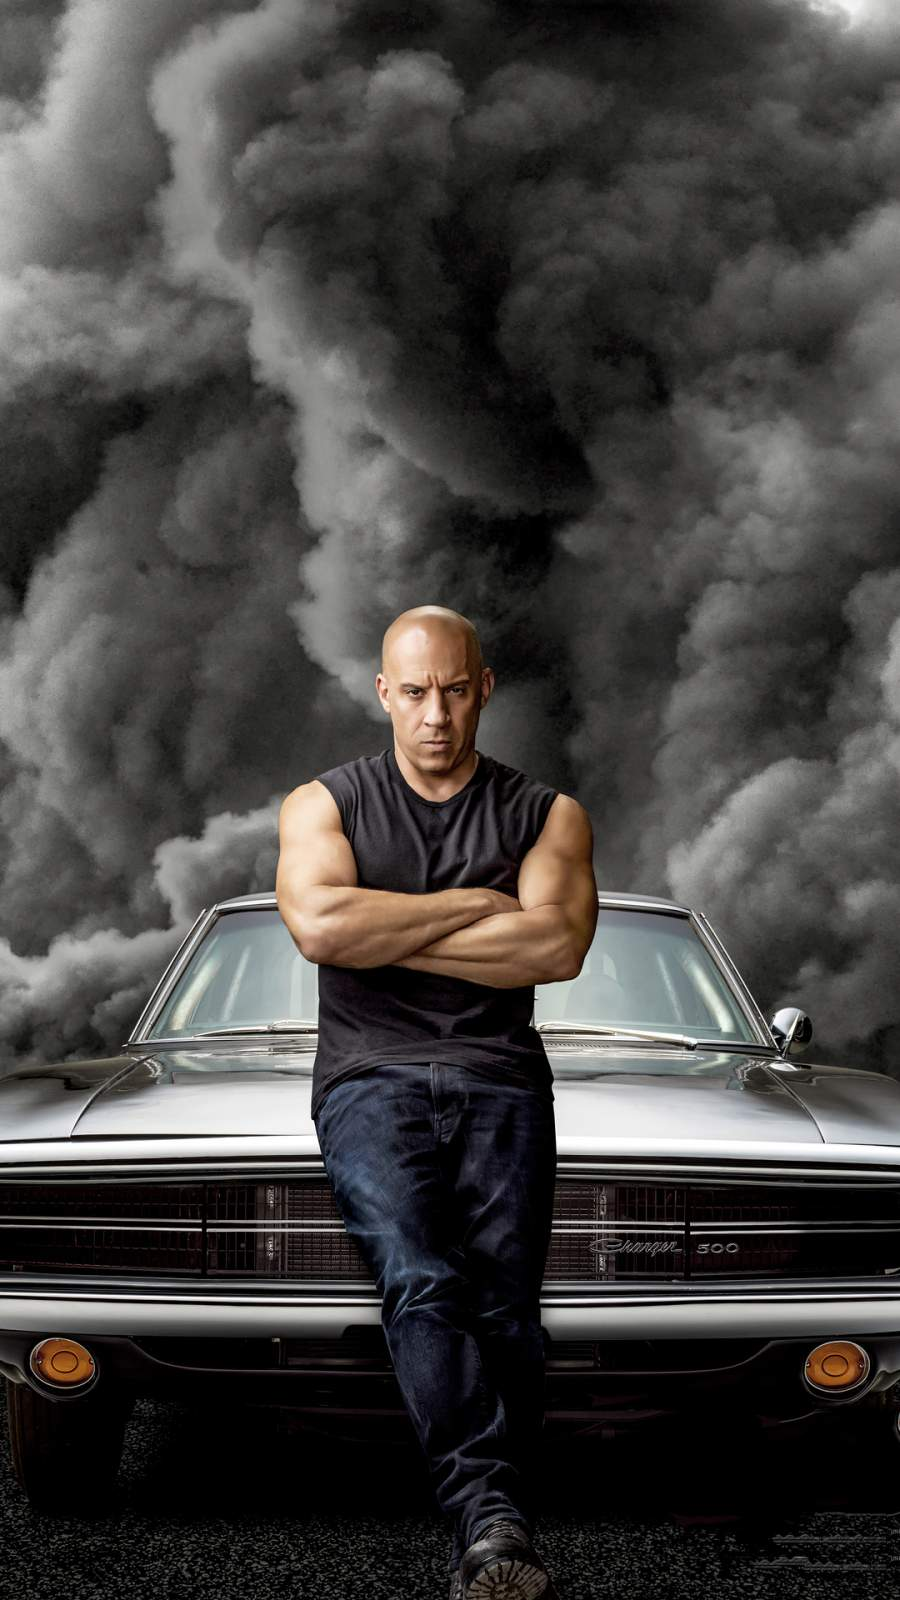 Vin Diesel Fast and Furious 9 iPhone Wallpaper